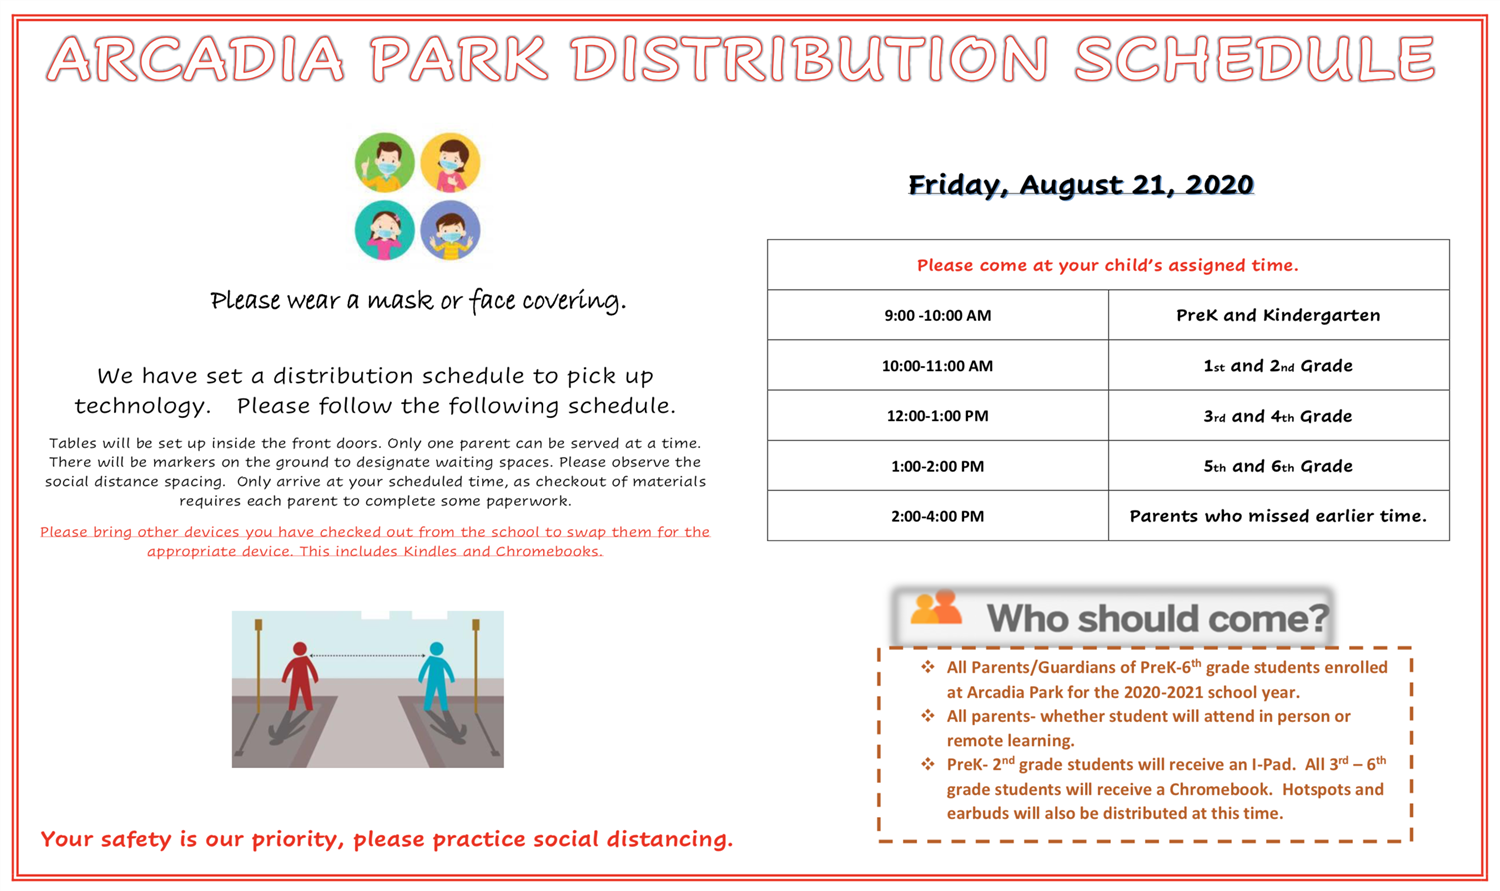 Distribution Schedule to Pick up Technology